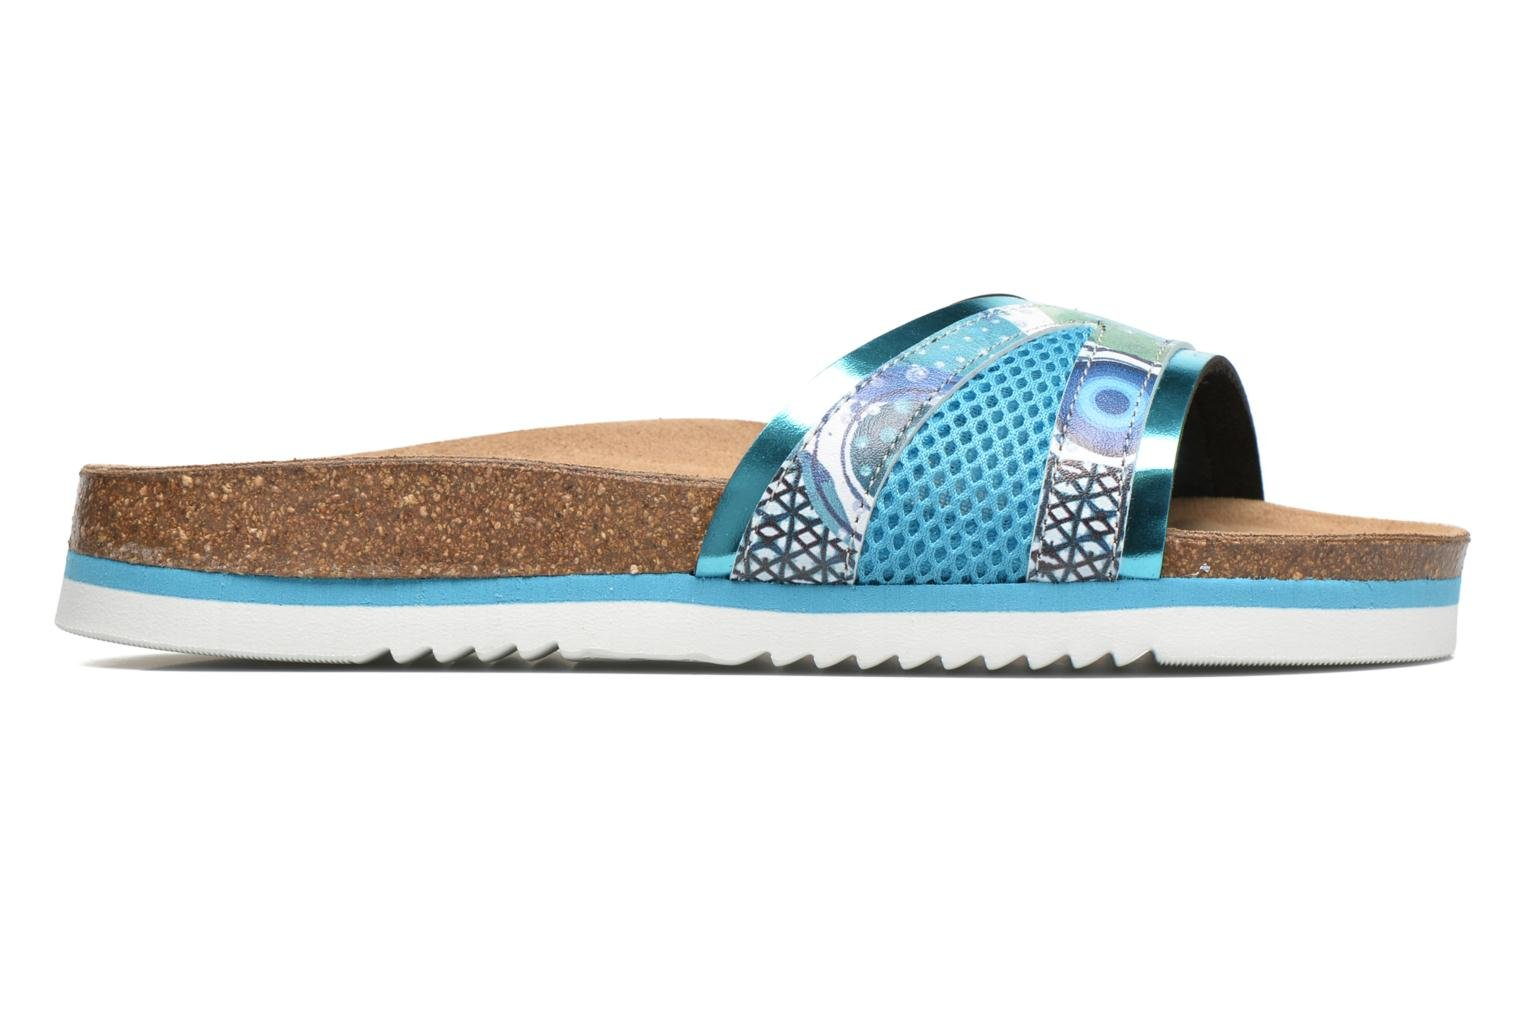 SHOES_BEACH BIO 11 NORA 5024 TURQUESA PALO